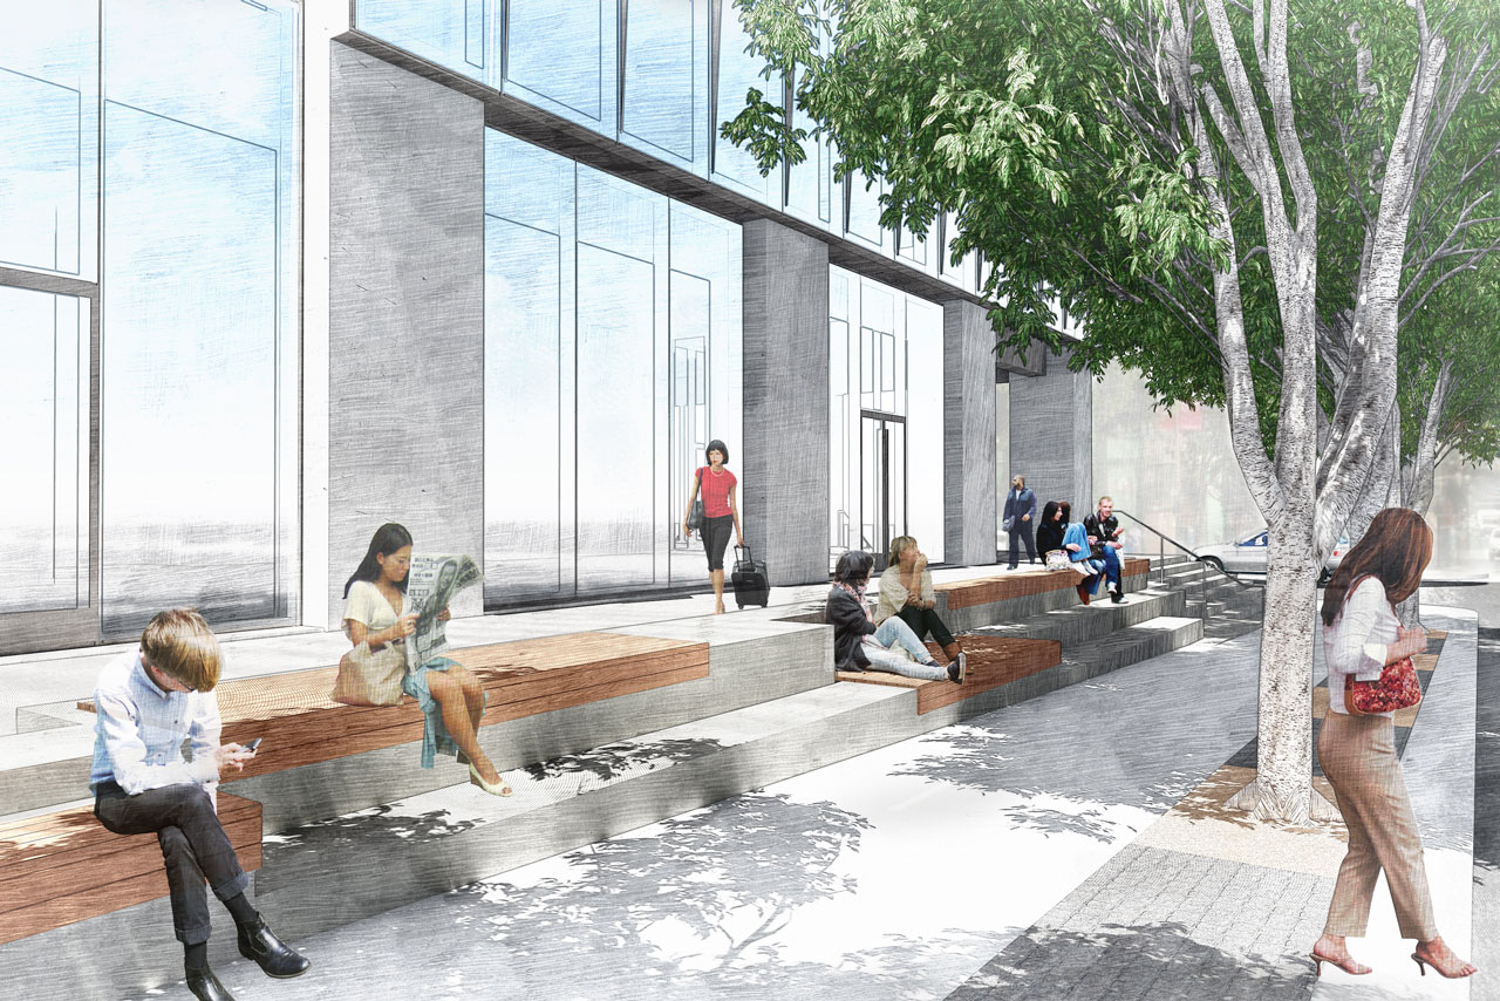 633 Folsom Street, design by MANTLE Landscape Architecture, images by Meyer + Silberberg Landscape Architecture, Inc